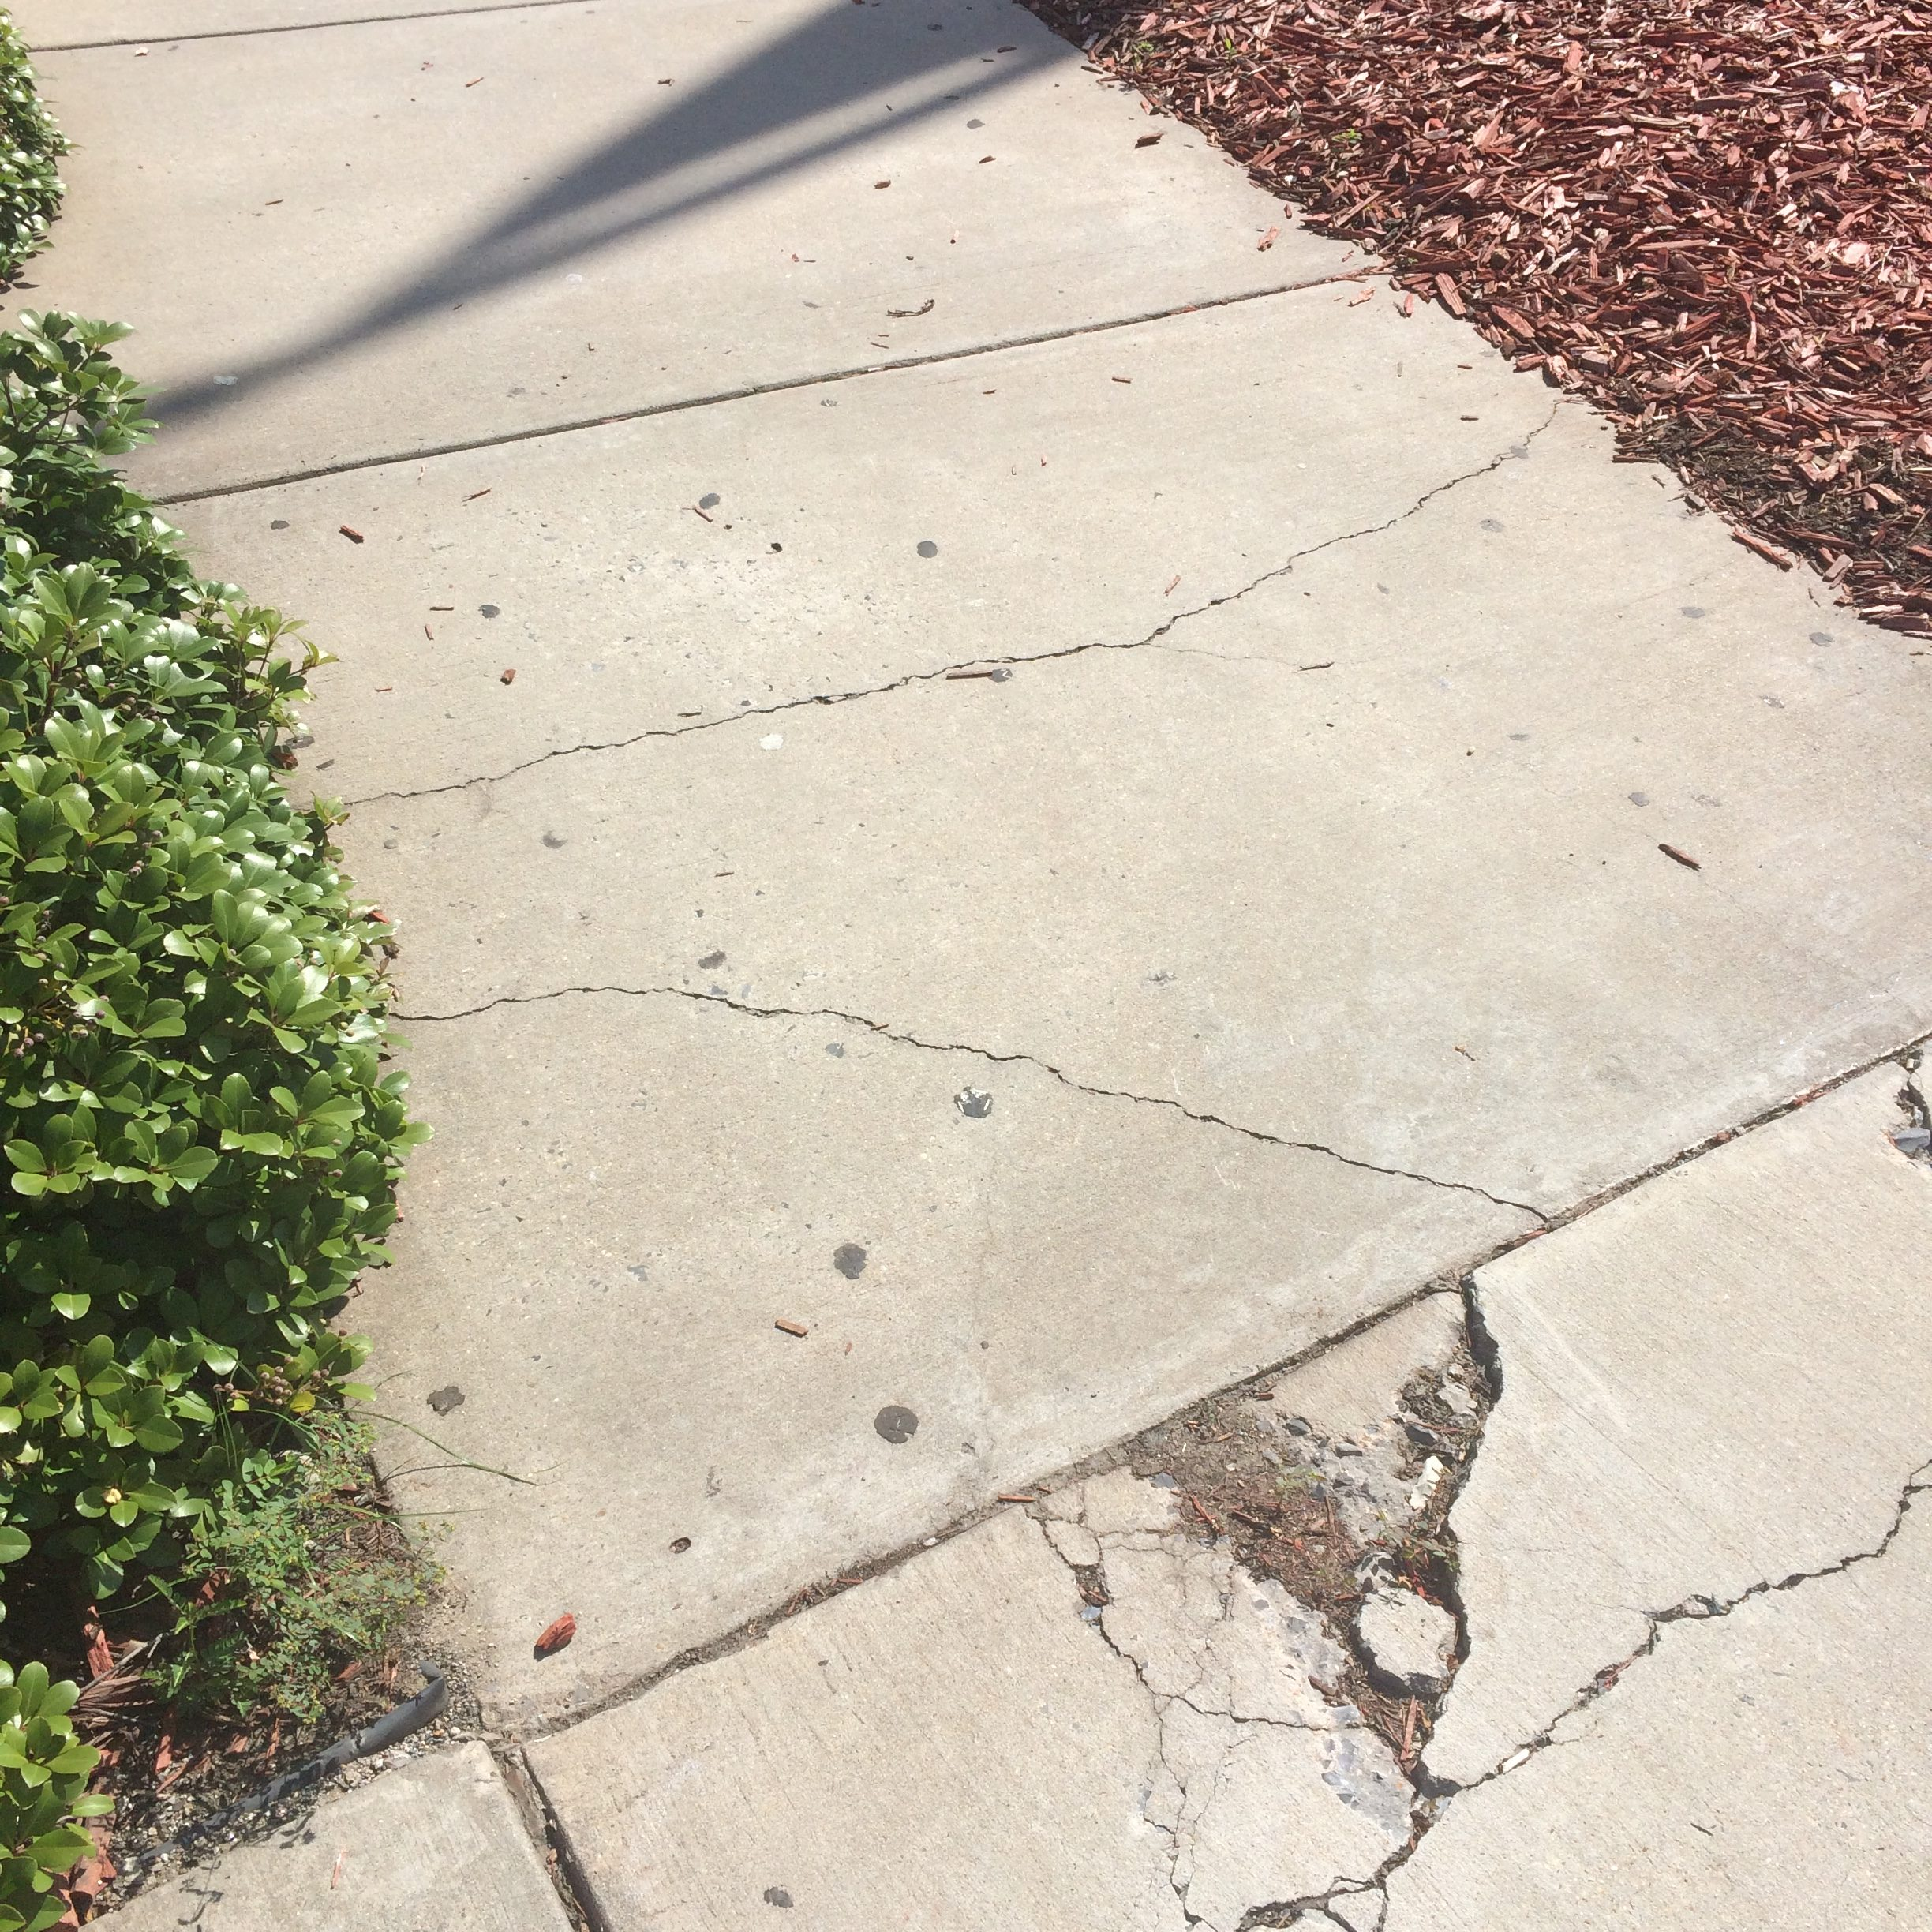 FedEx-forum-damaged-concrete-sidewalk-2-e1537086808690